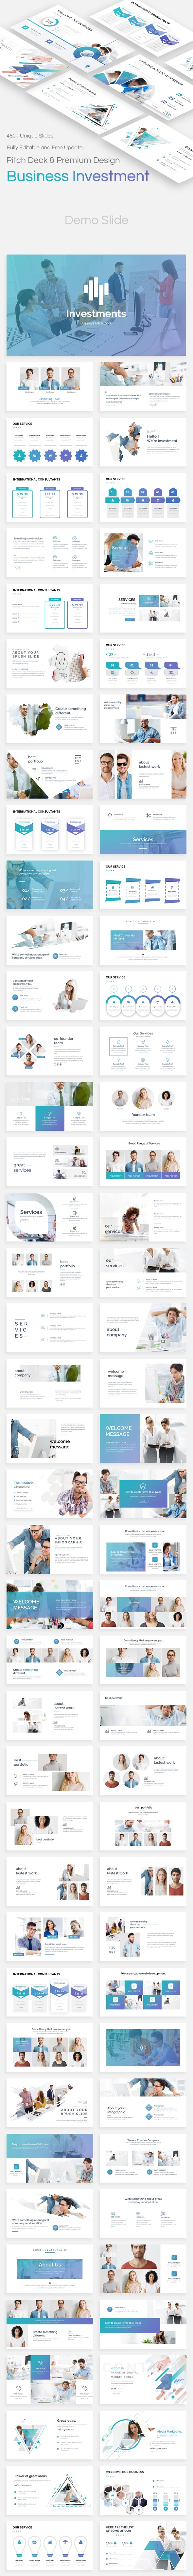 Business Investments Pitch Deck Keynote Template - Business Keynote Templates